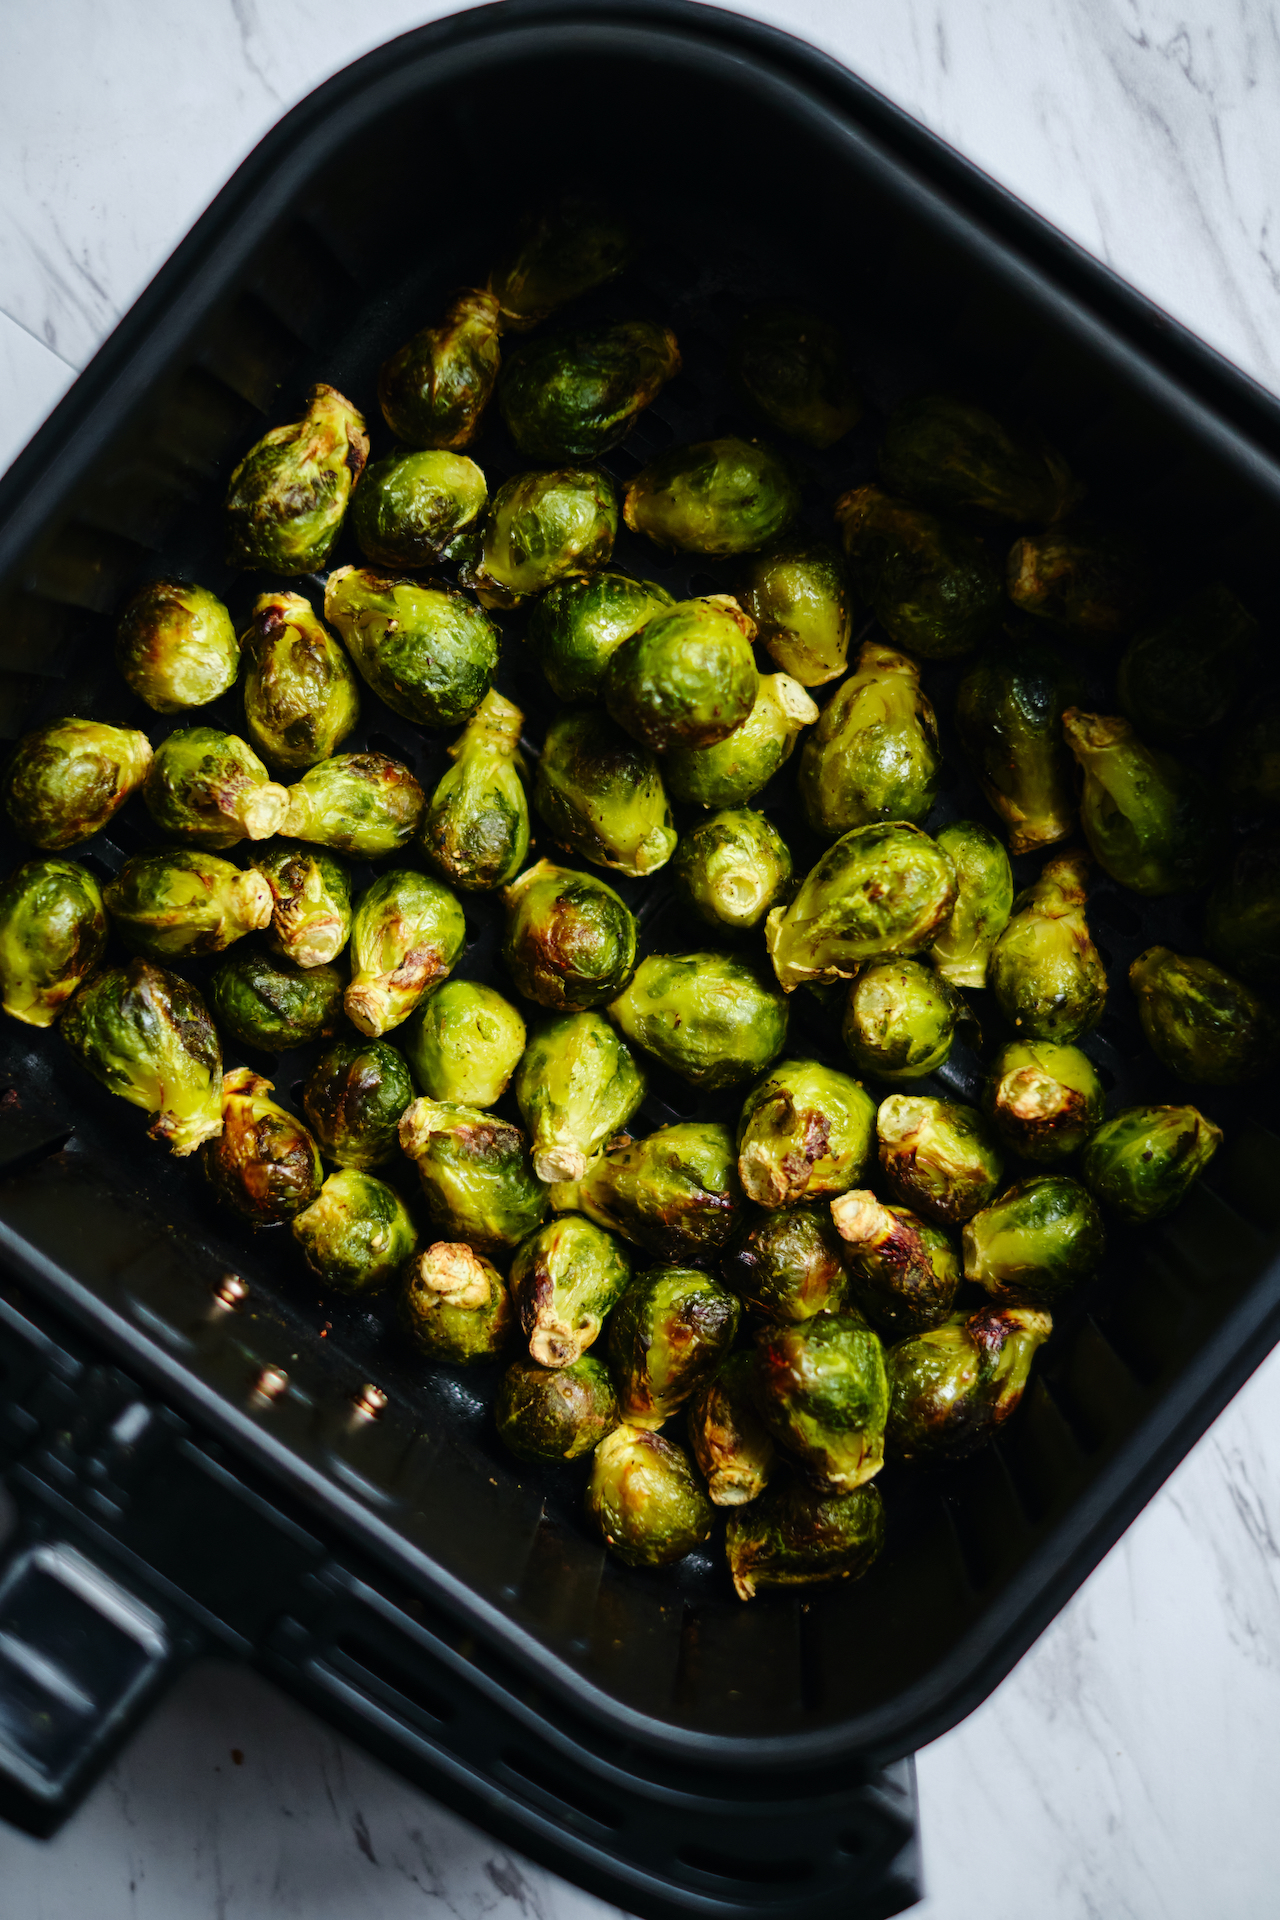 brussels in the basket of an air fryer after being cooked